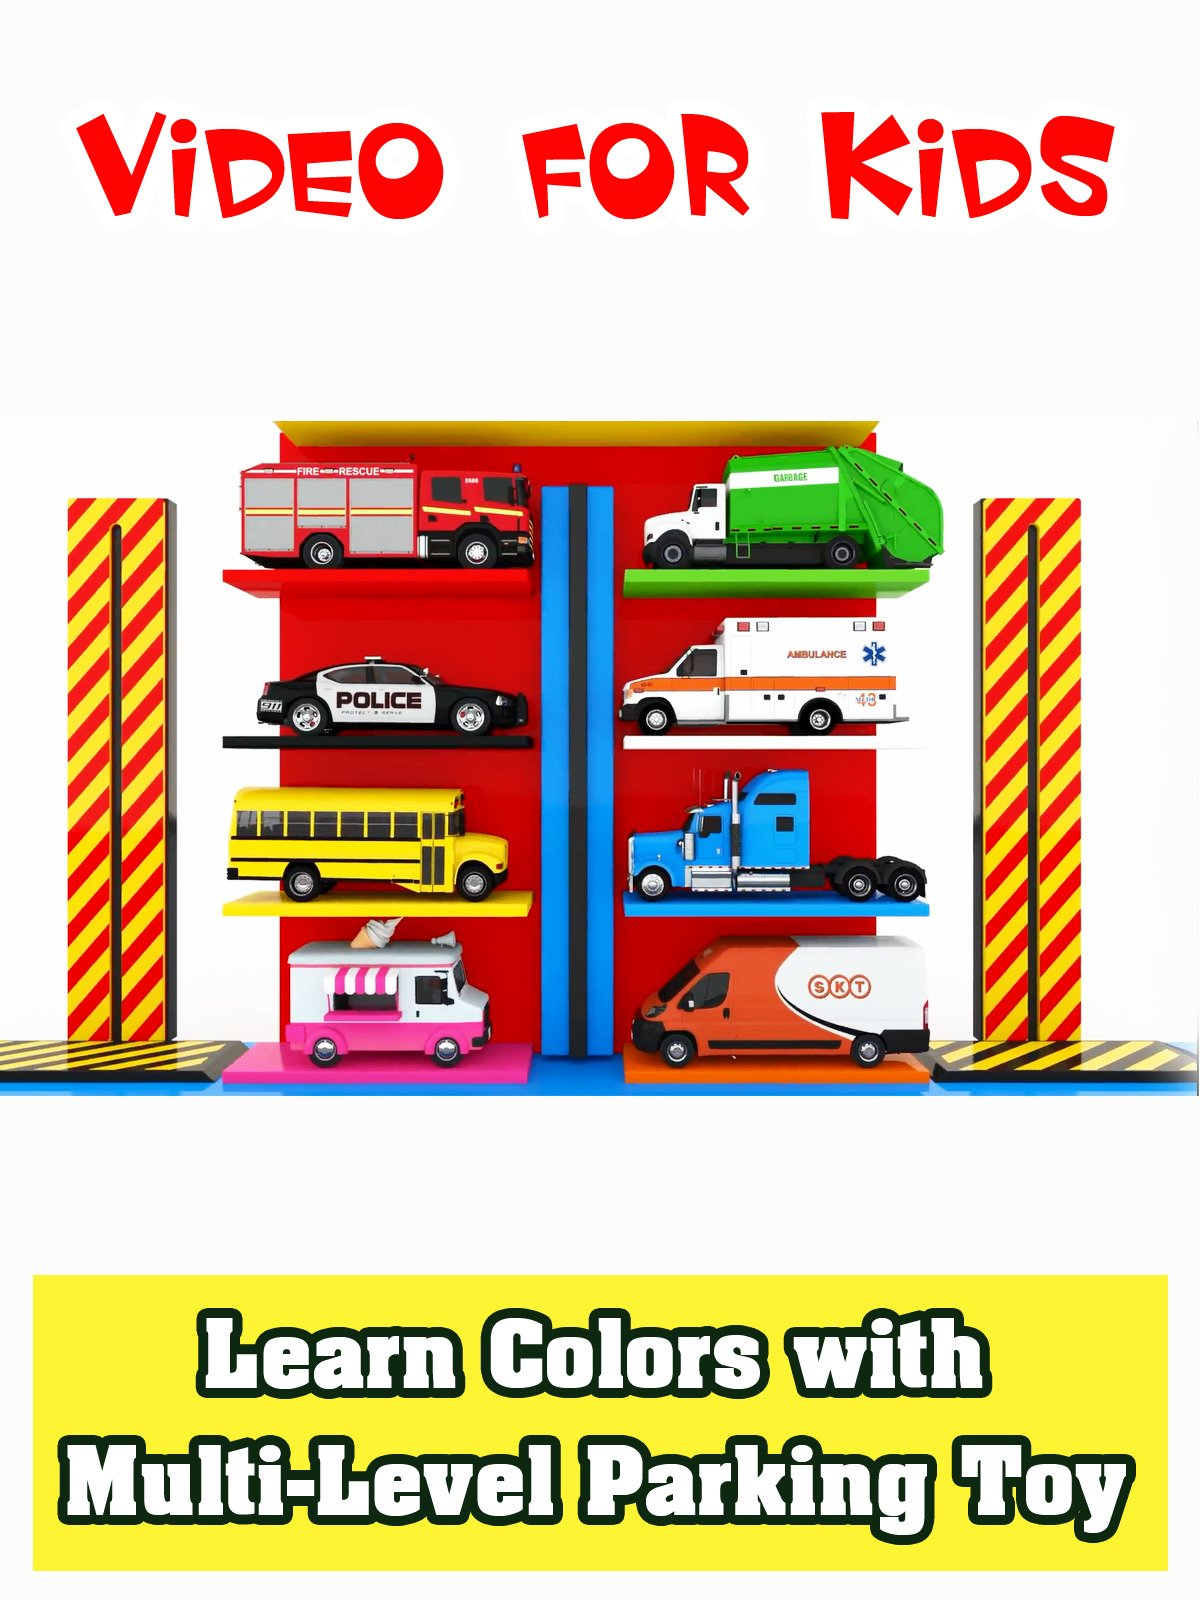 Learn Colors with Multi-Level Parking Toy